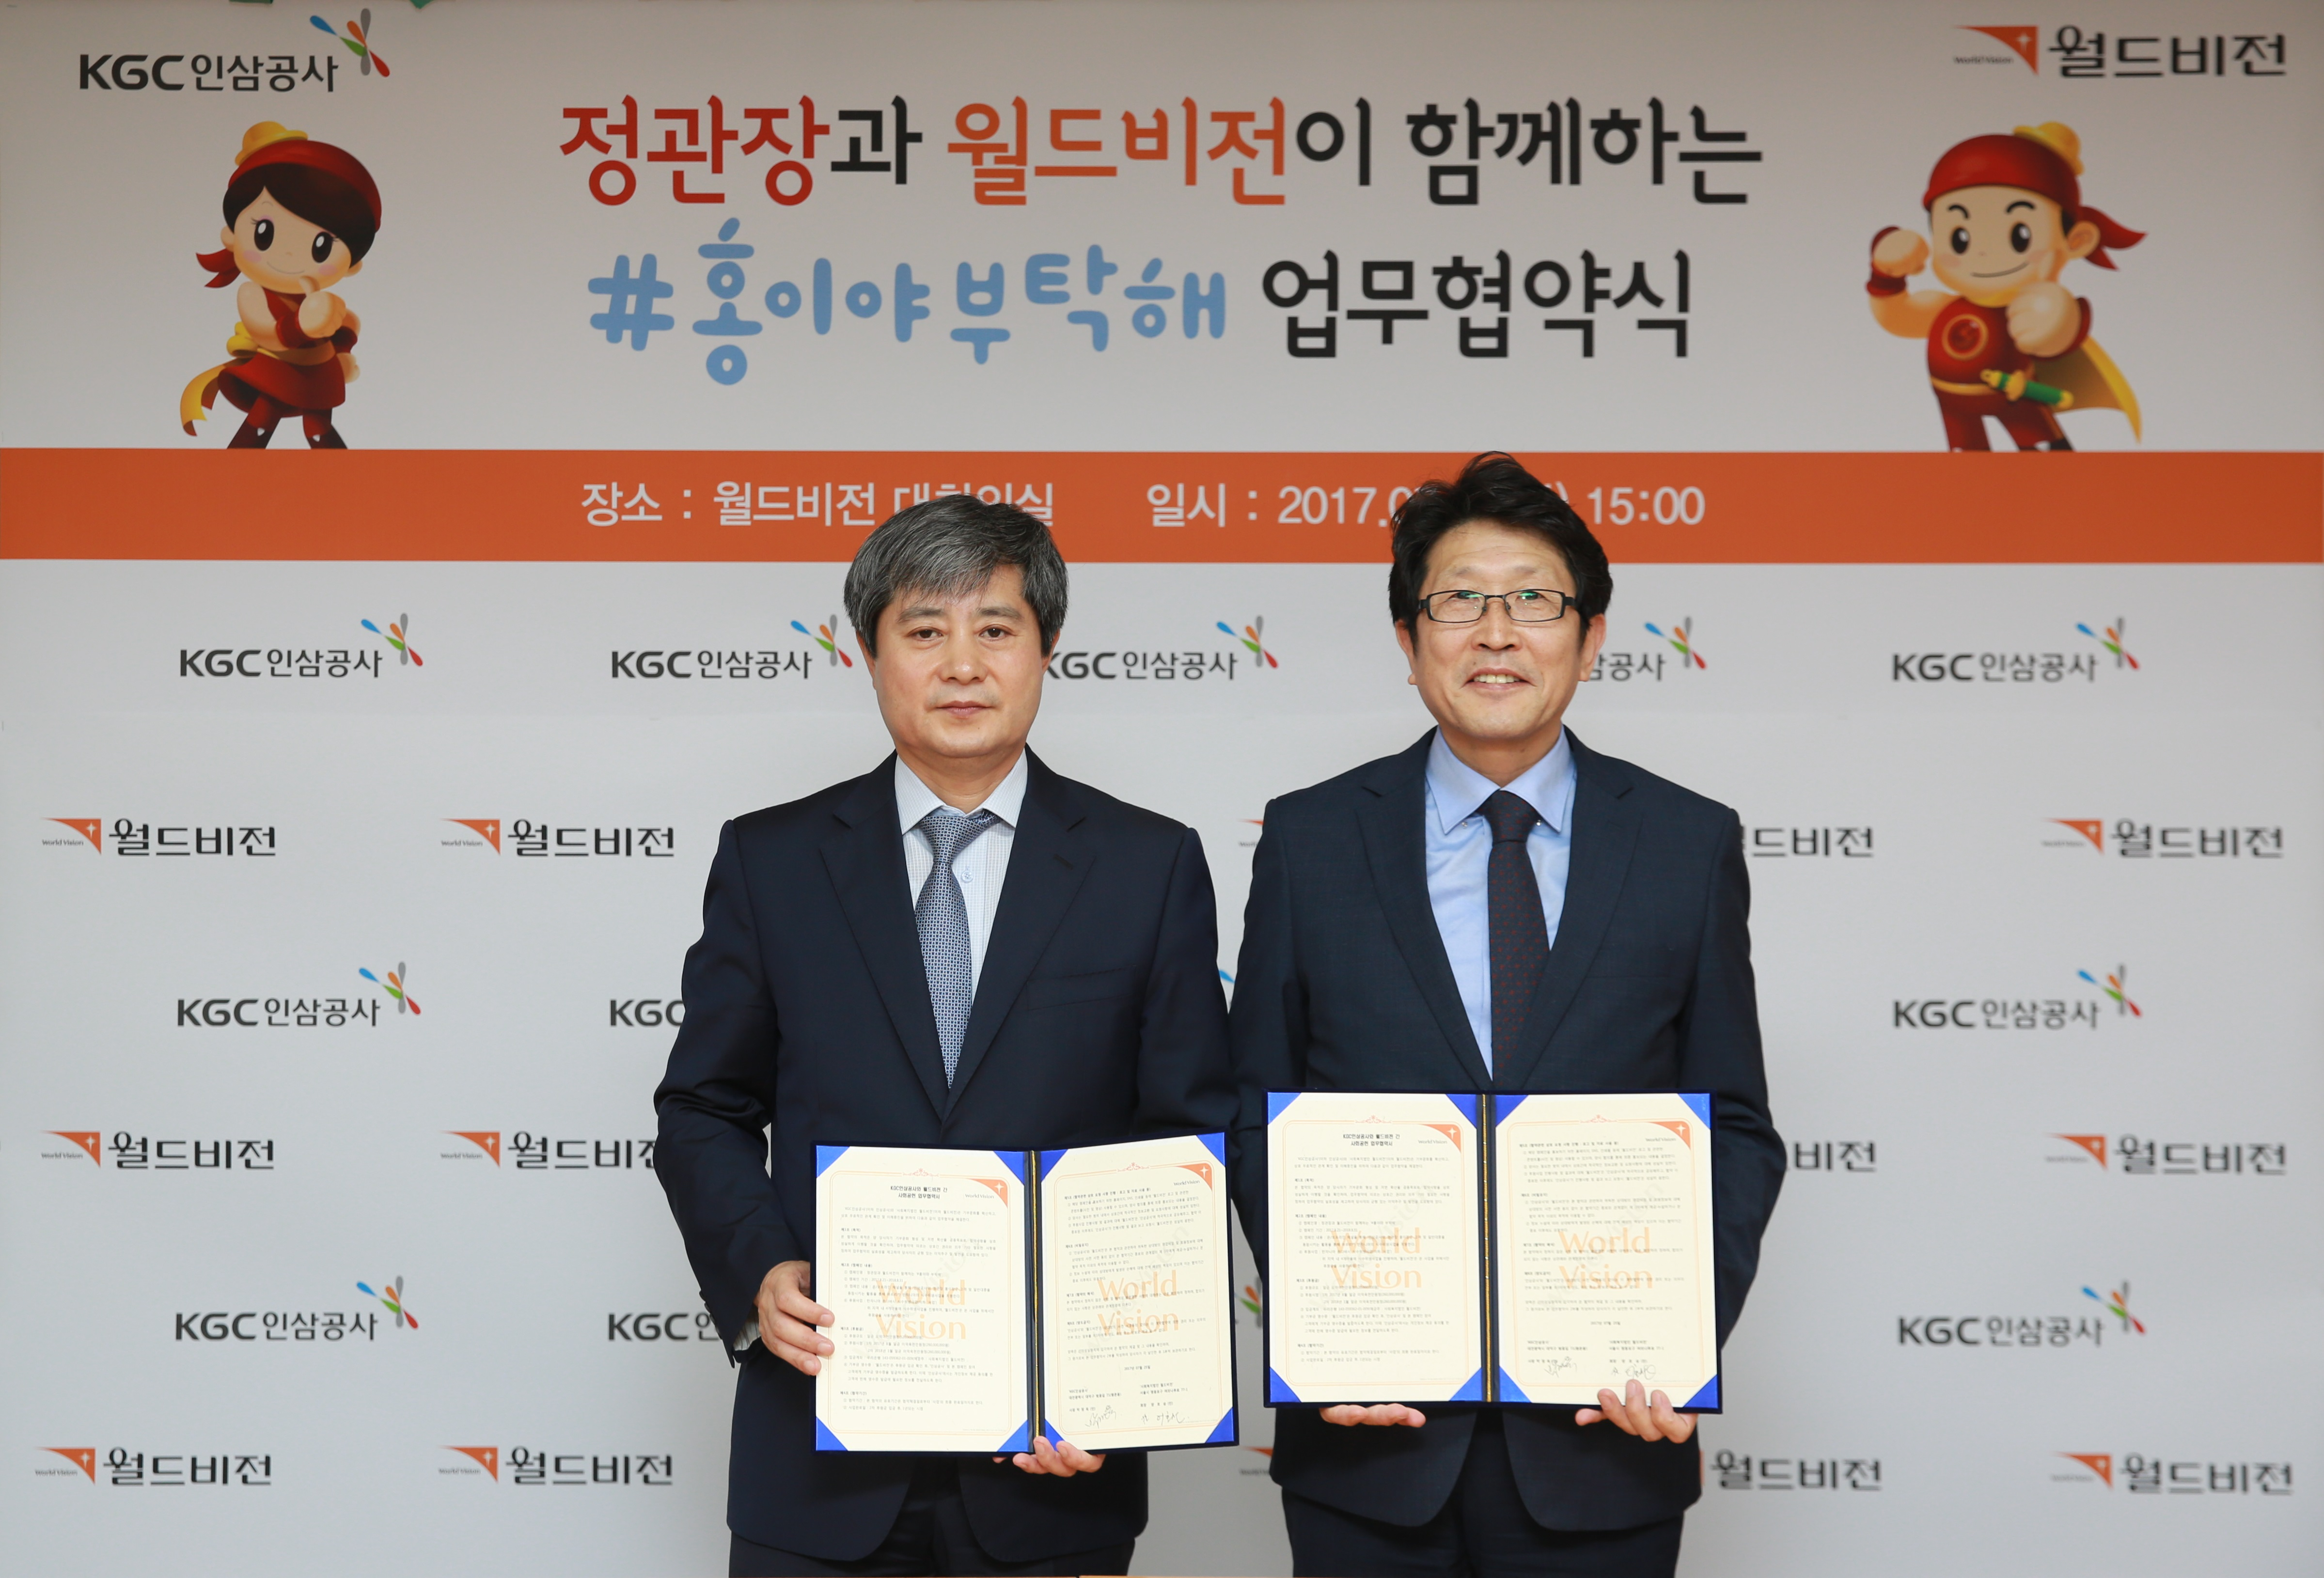 Park Jung-hwan (left), marketing manager of Korea Ginseng Corporation (KGC) and Eo Ho-seon (right), marketing manager of World Vision, concluded an agreement to support World Vision's drinking water hygiene projects in Africa.